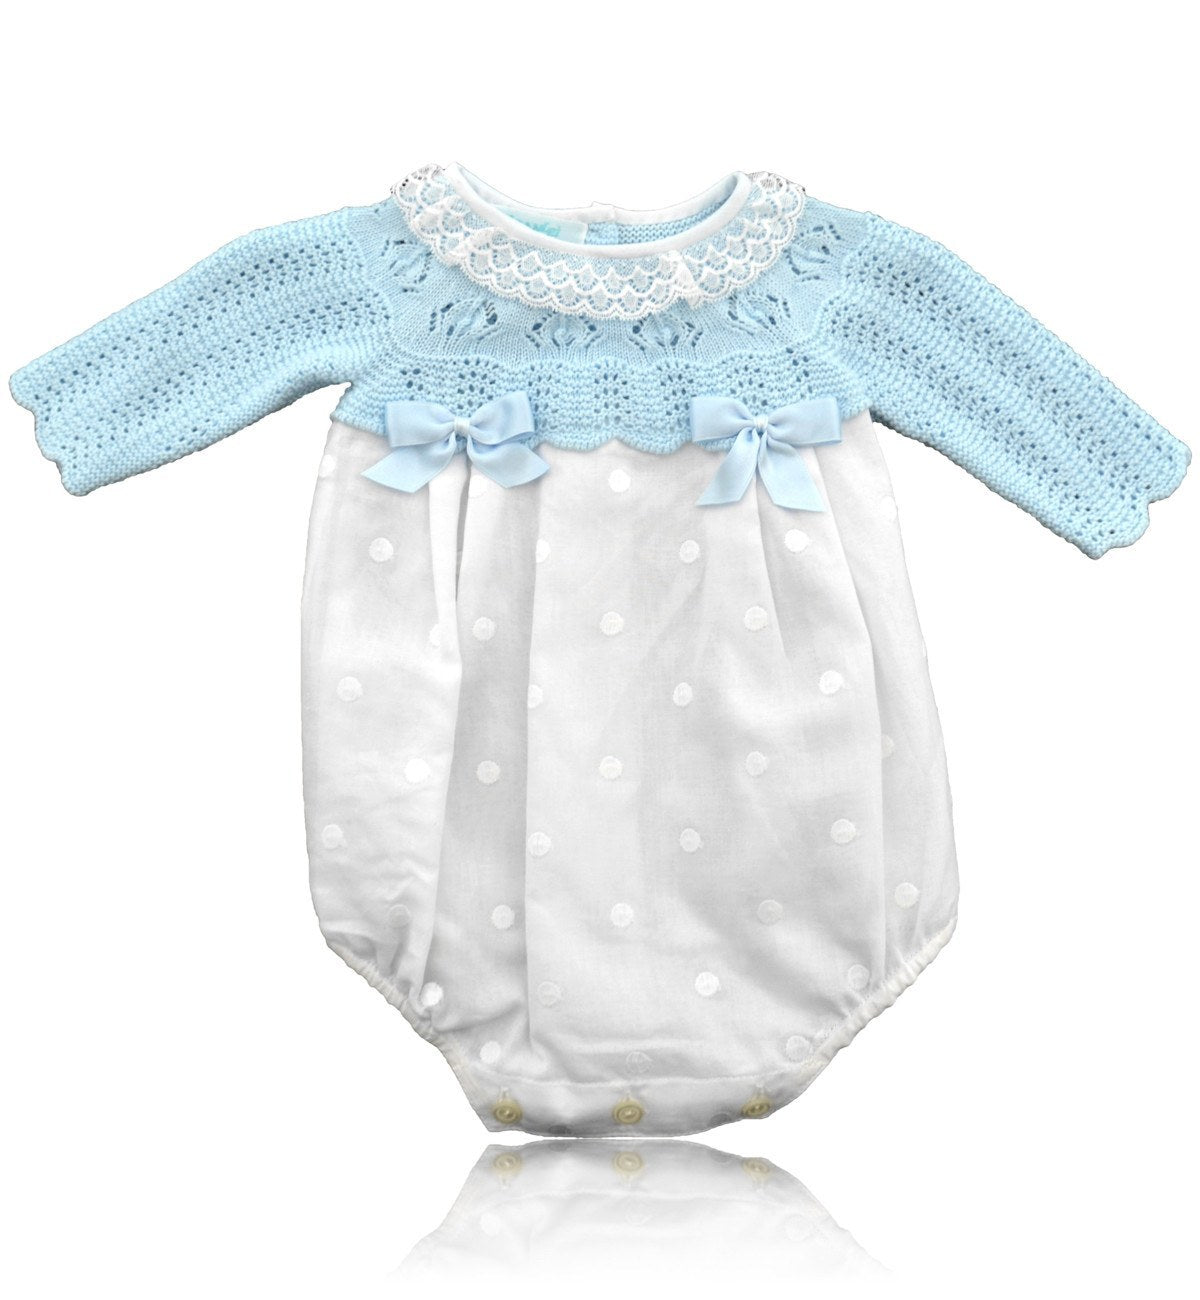 Baby Boy Blue And White Romper Suit - BabymaC